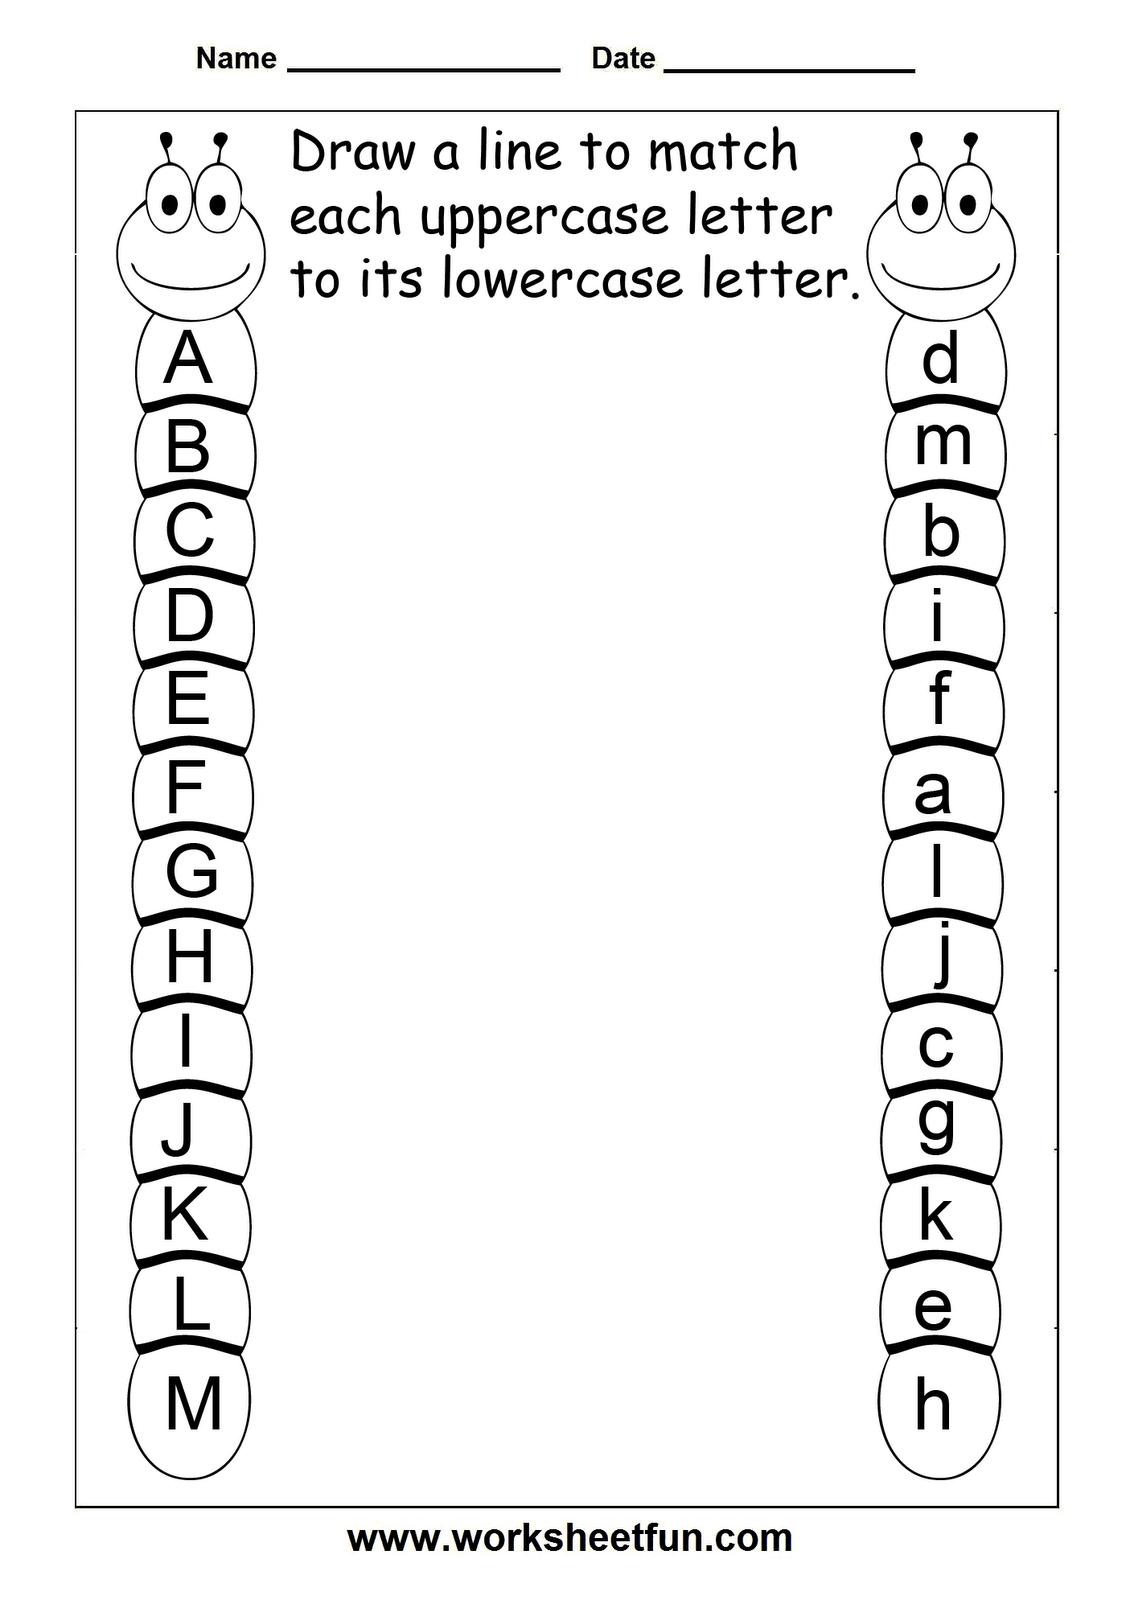 Free Printable Worksheets | K-1 Collection | Preschool, Preschool - Free Printable Activities For Preschoolers